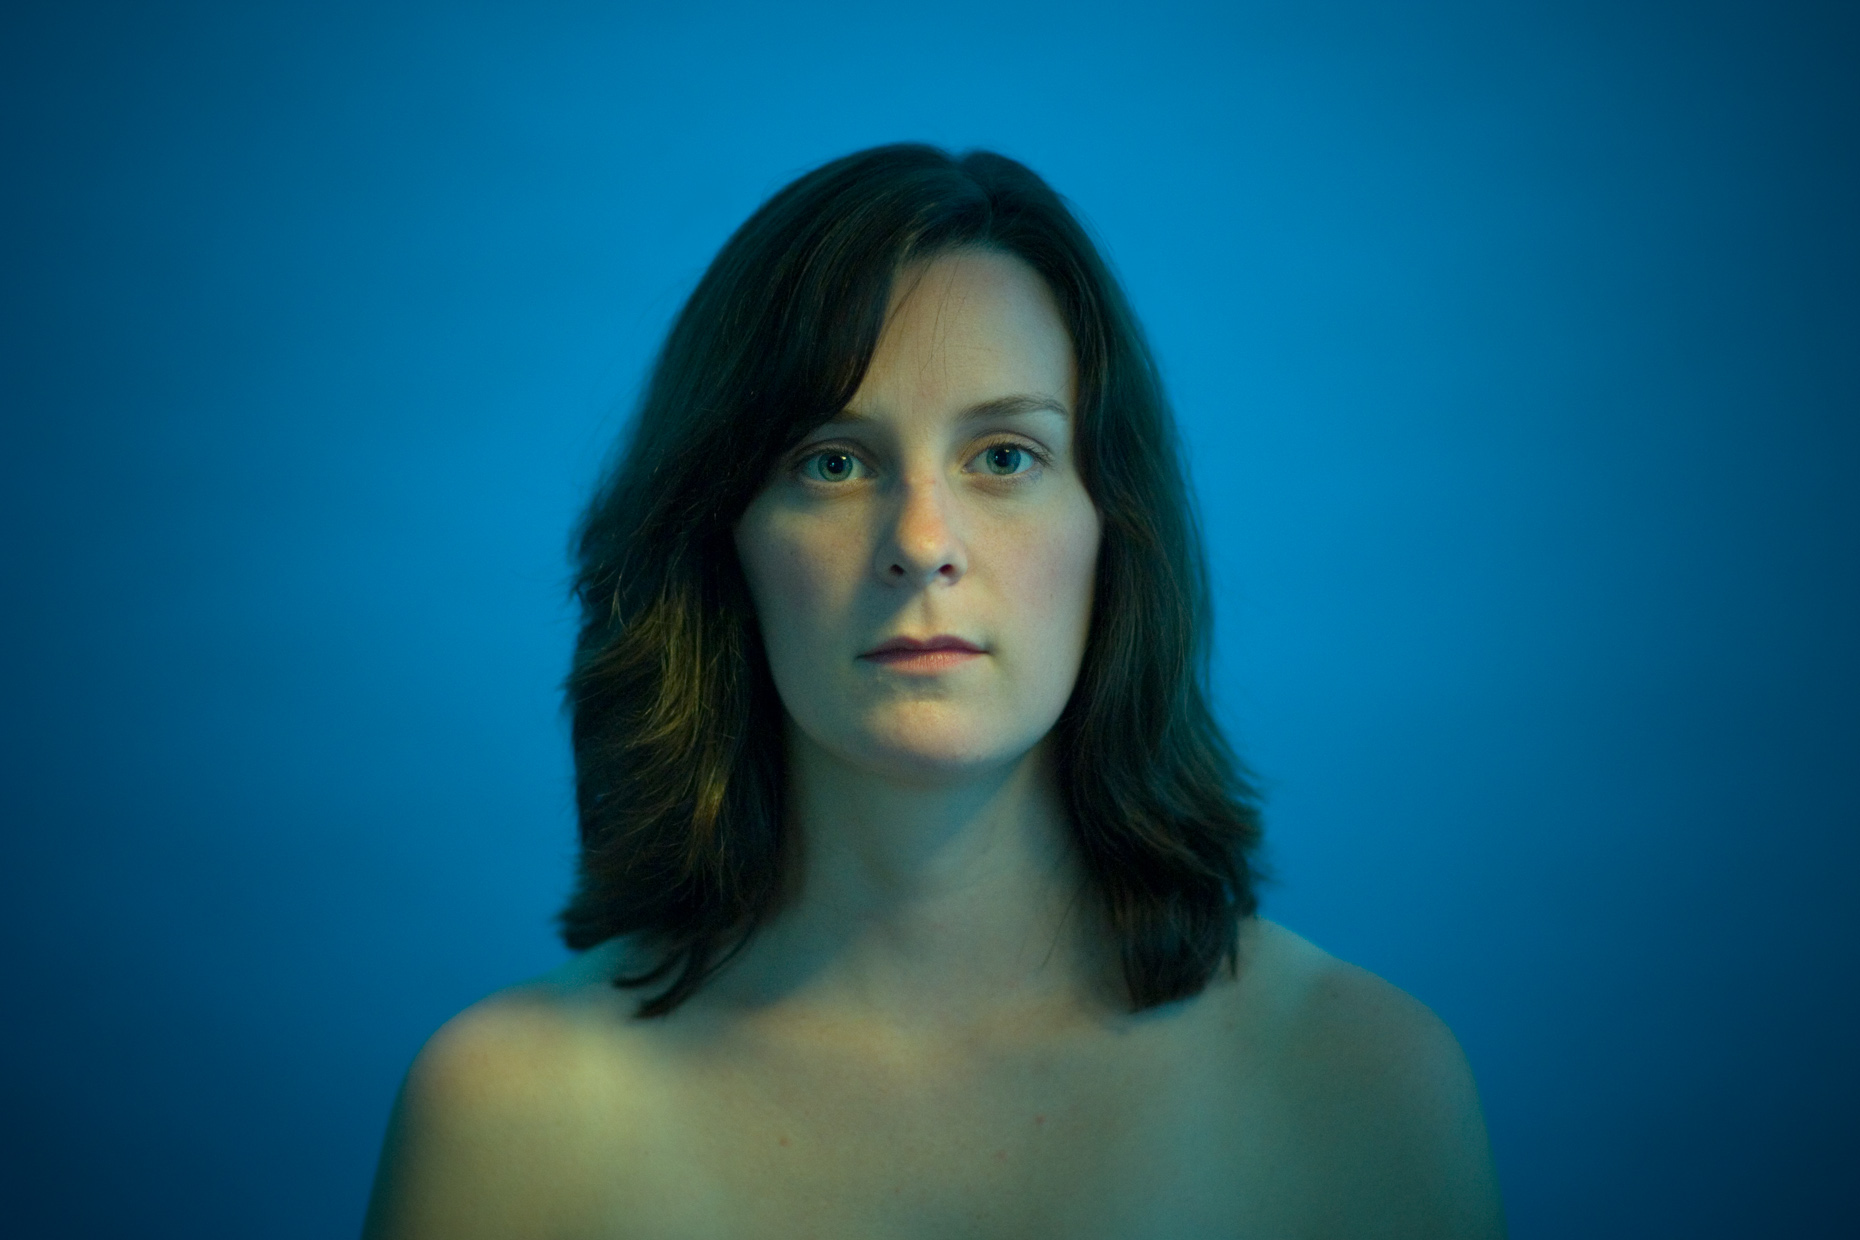 Janette in Blue | Philadelphia Photographer Dave Moser